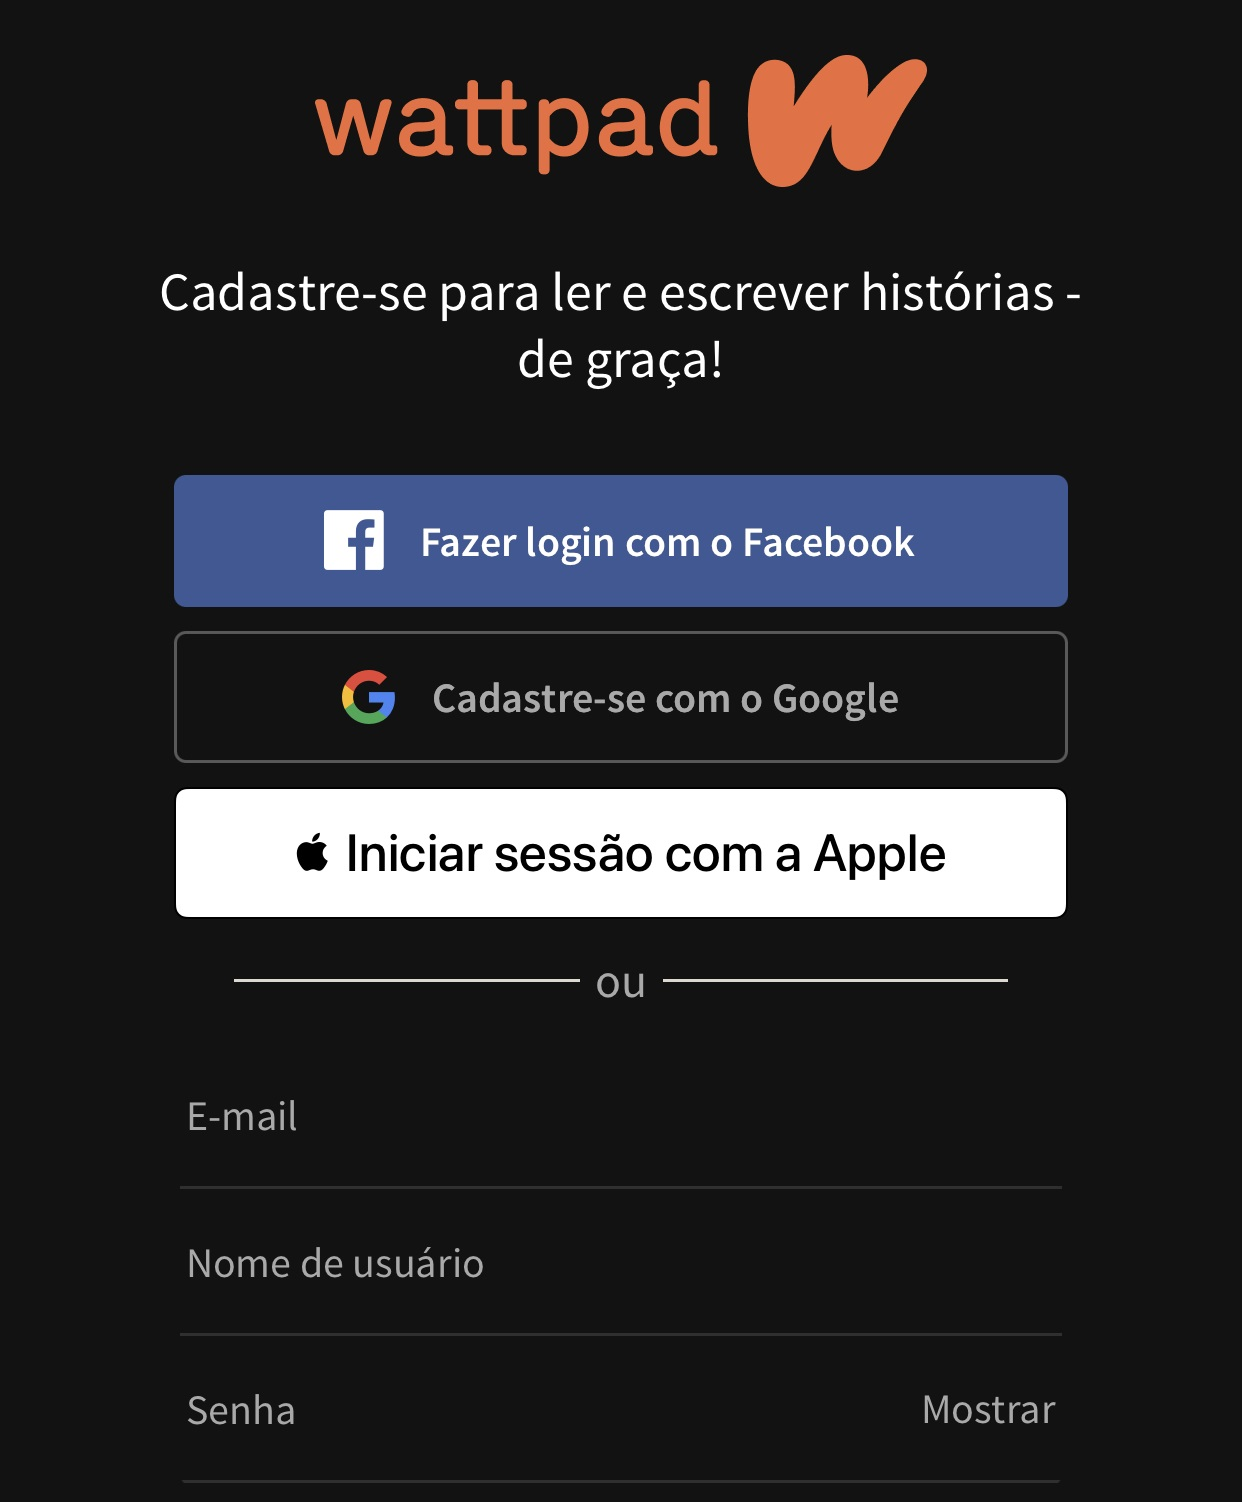 It is possible to import your profile on other networks to create your registration on Wattpad